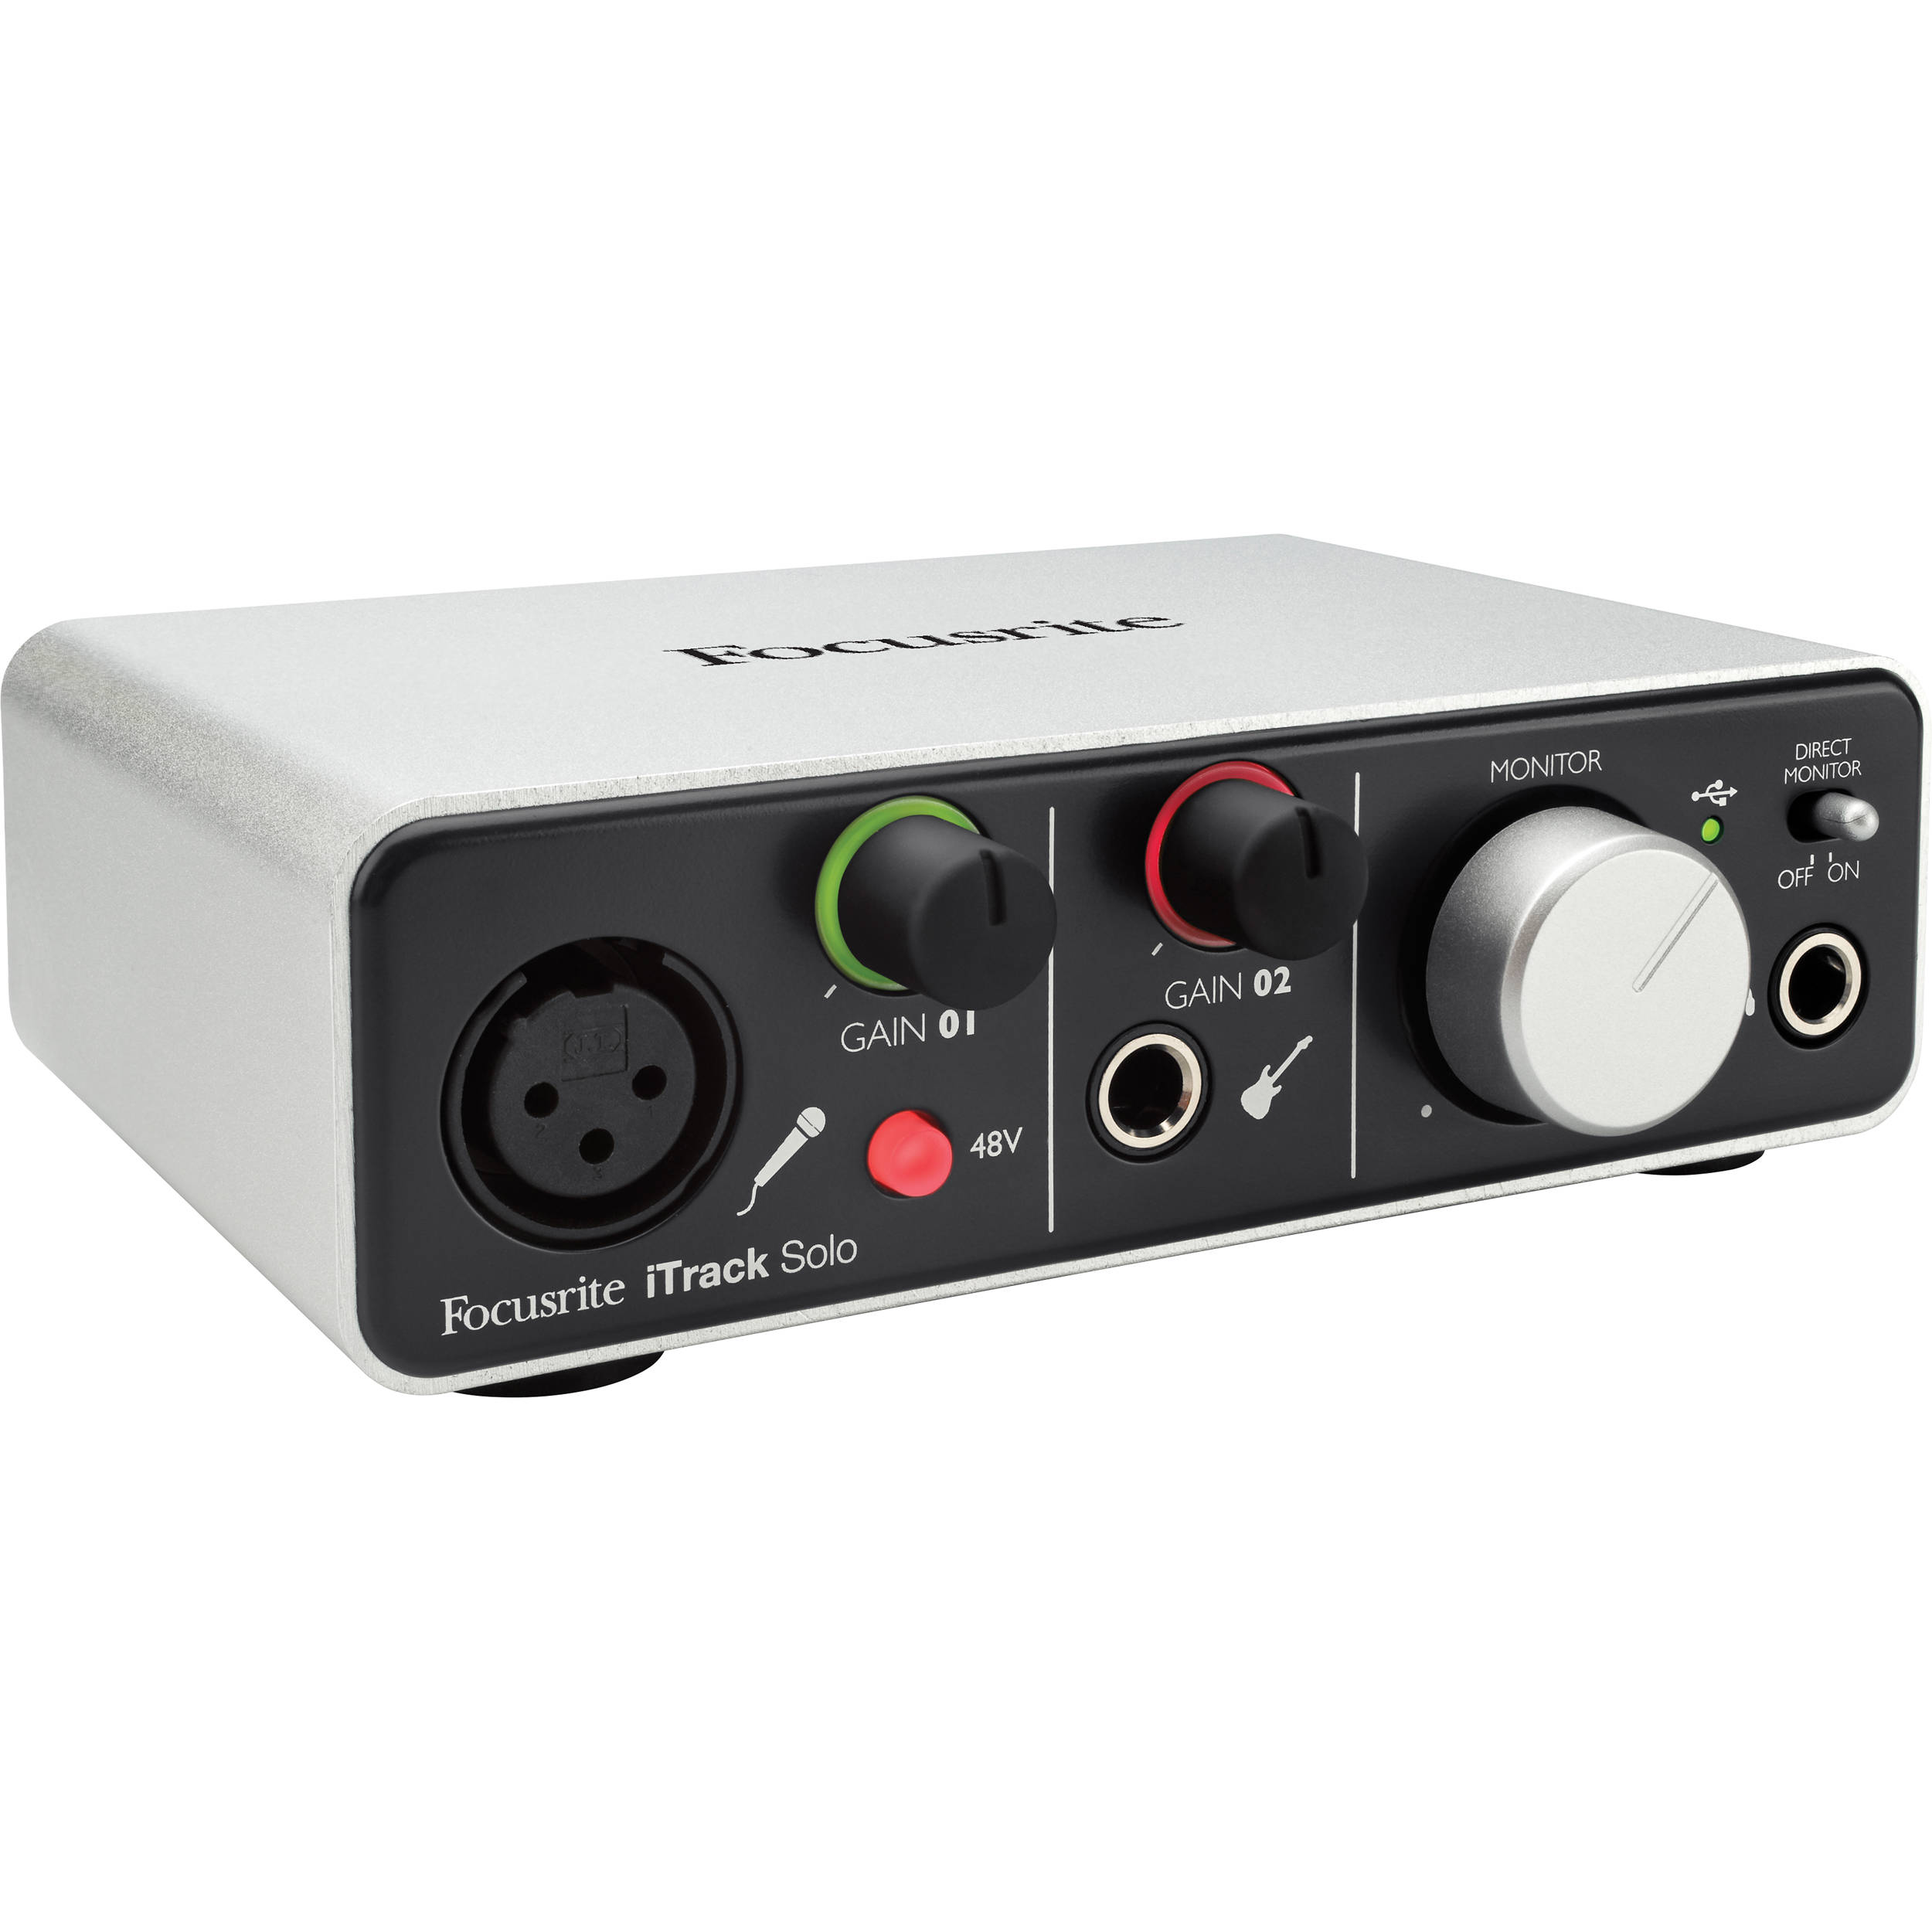 Focusrite iTrack Solo (Lightning) - USB 2 0 Audio Interface for Compatible  iPad, Mac, PC